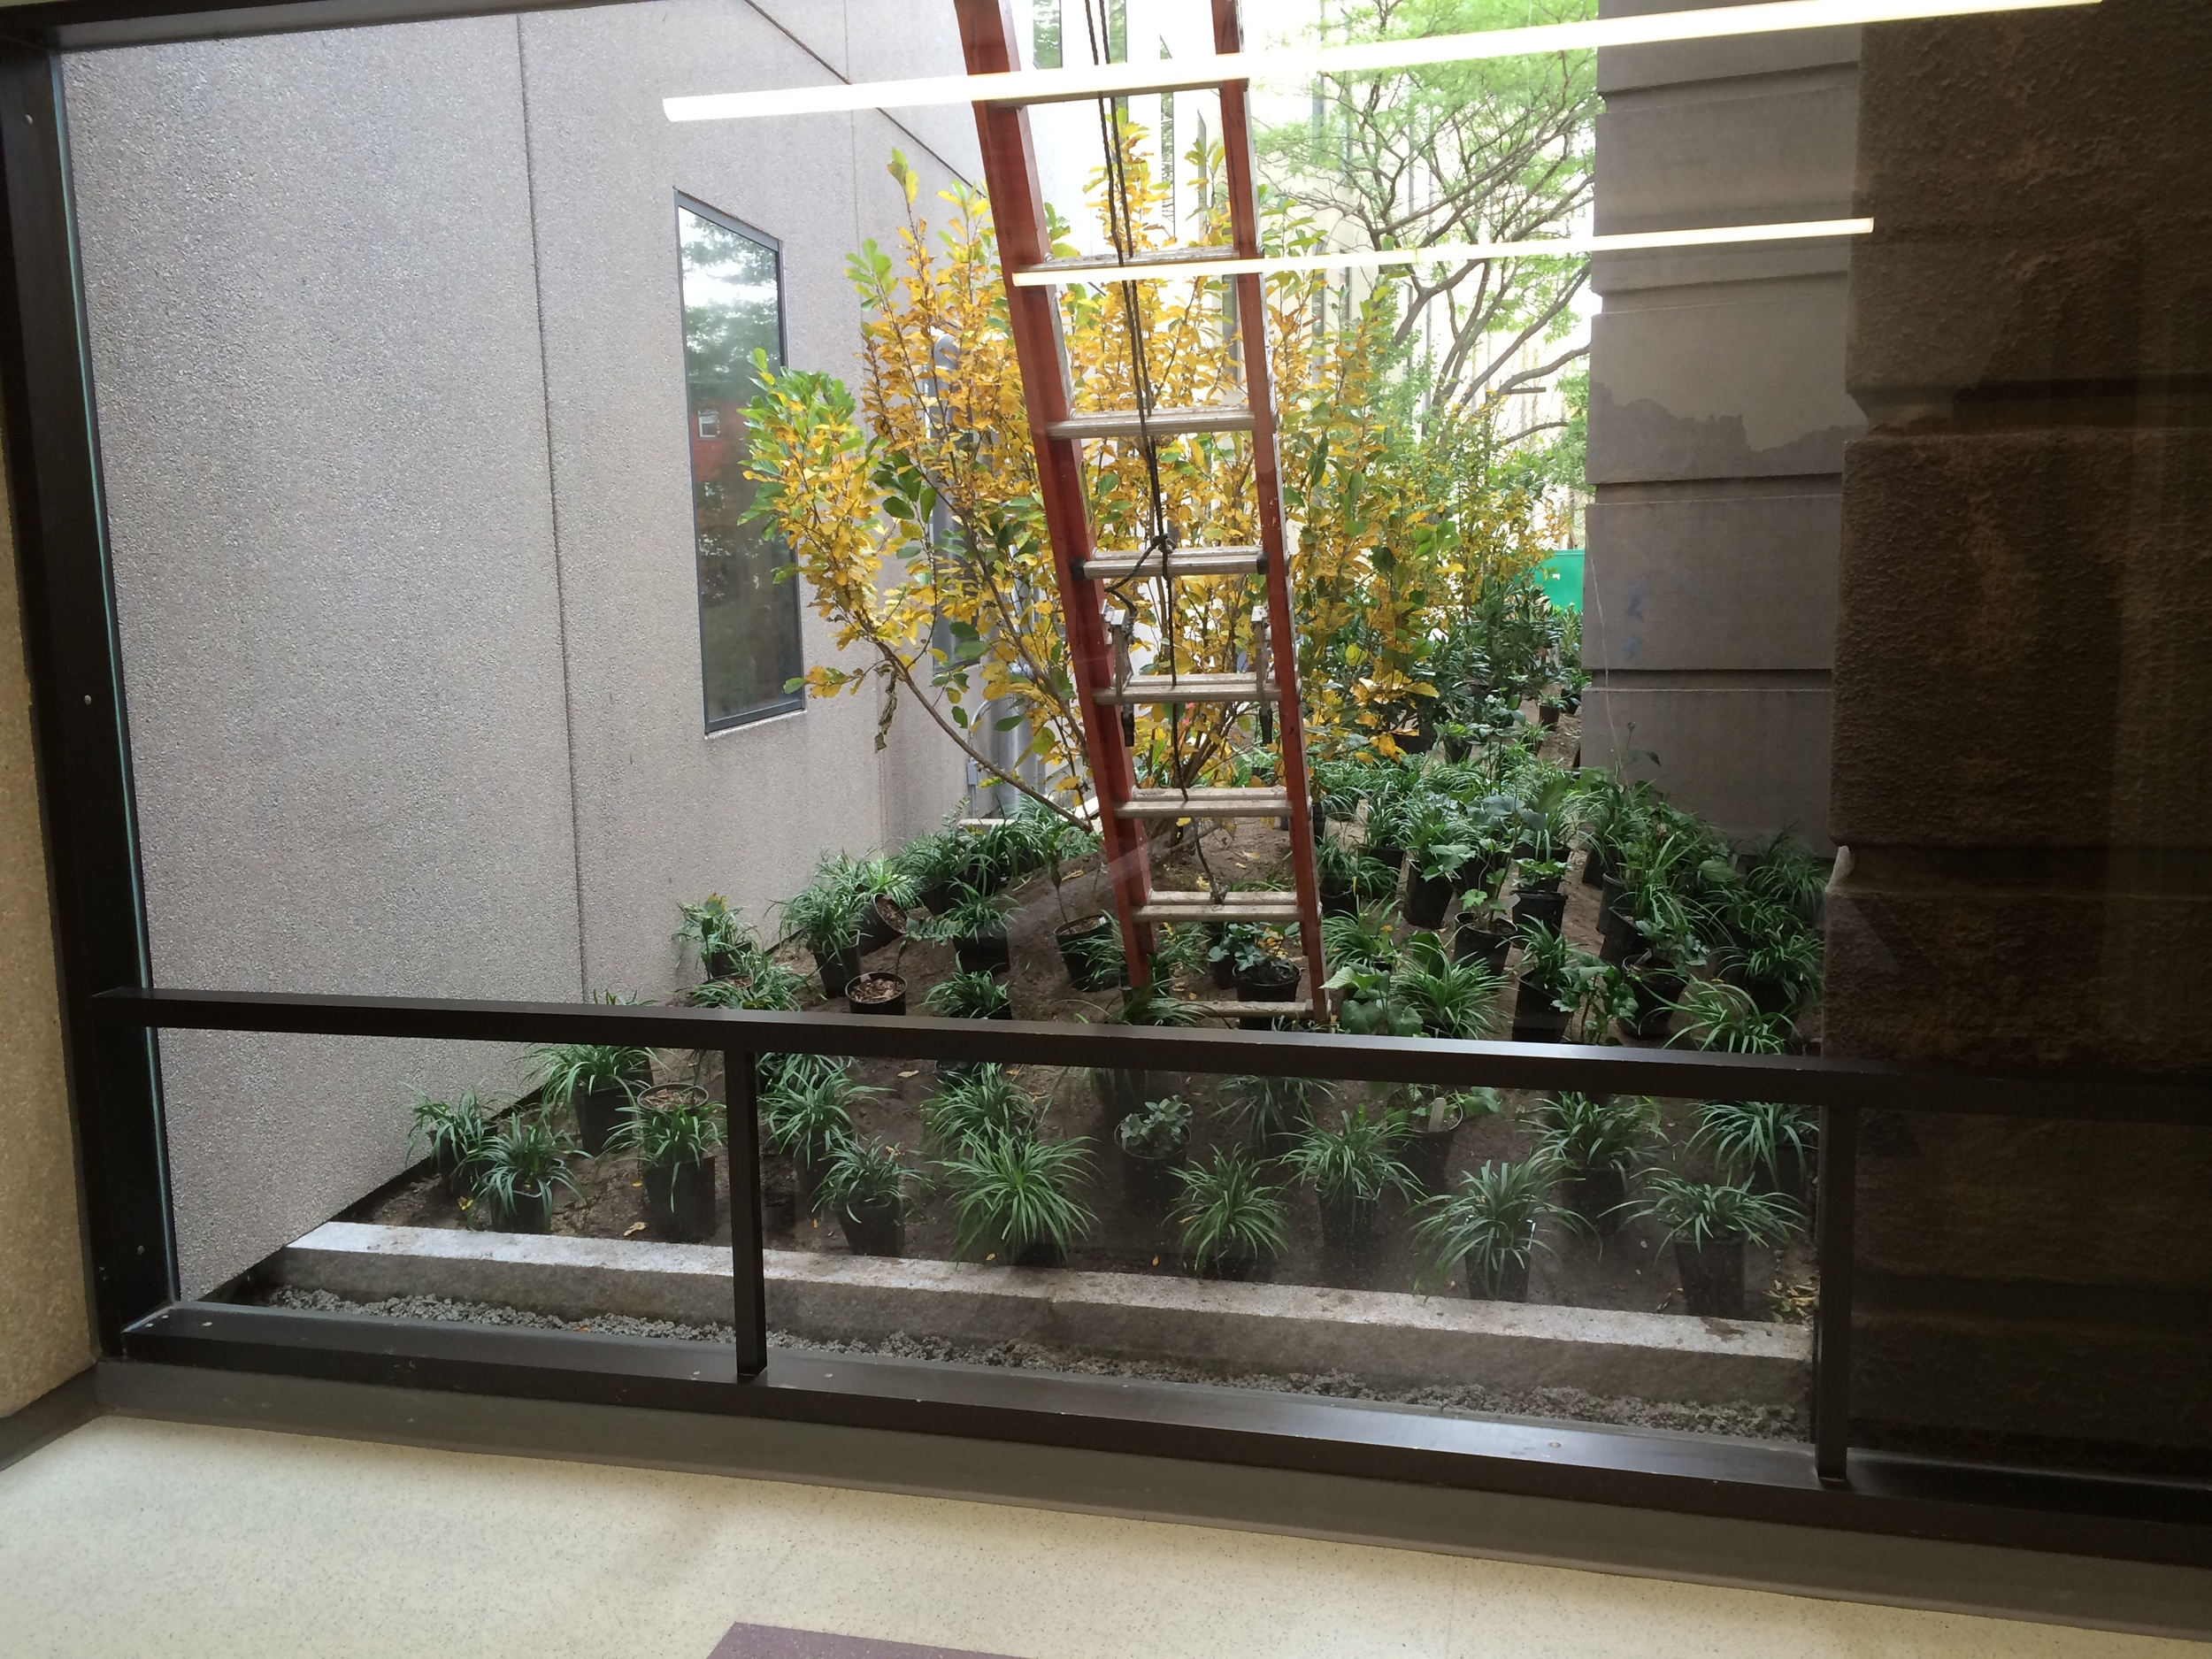 Interstitial garden with plants placed